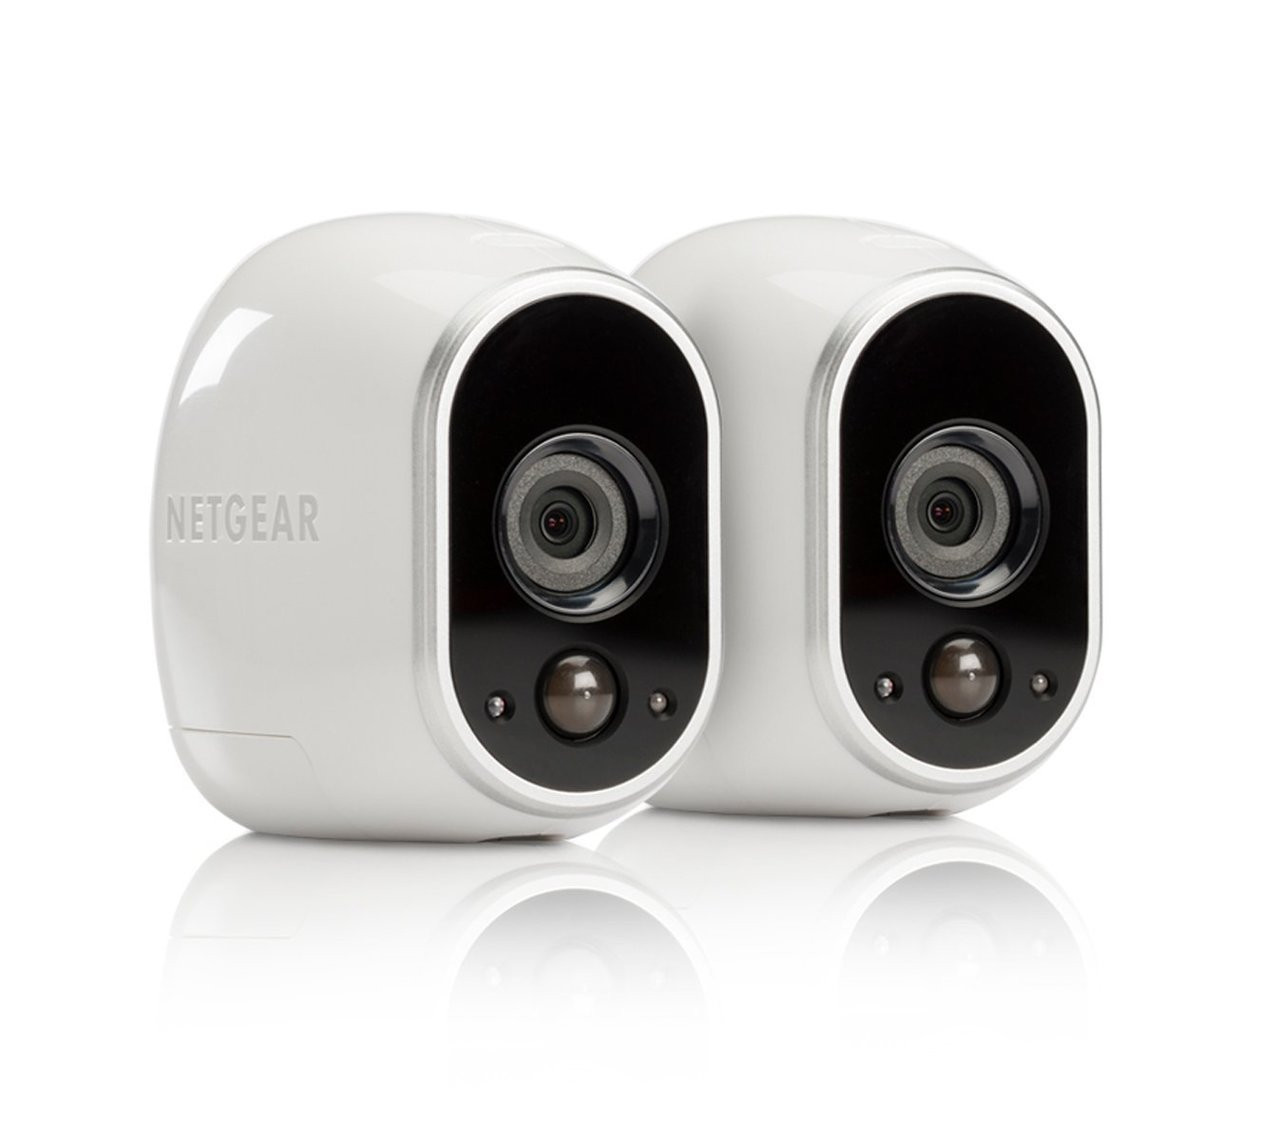 ArloVMC3030-100NAR-Two Pack Security Cameras, System Add-on - Certified Refurbished